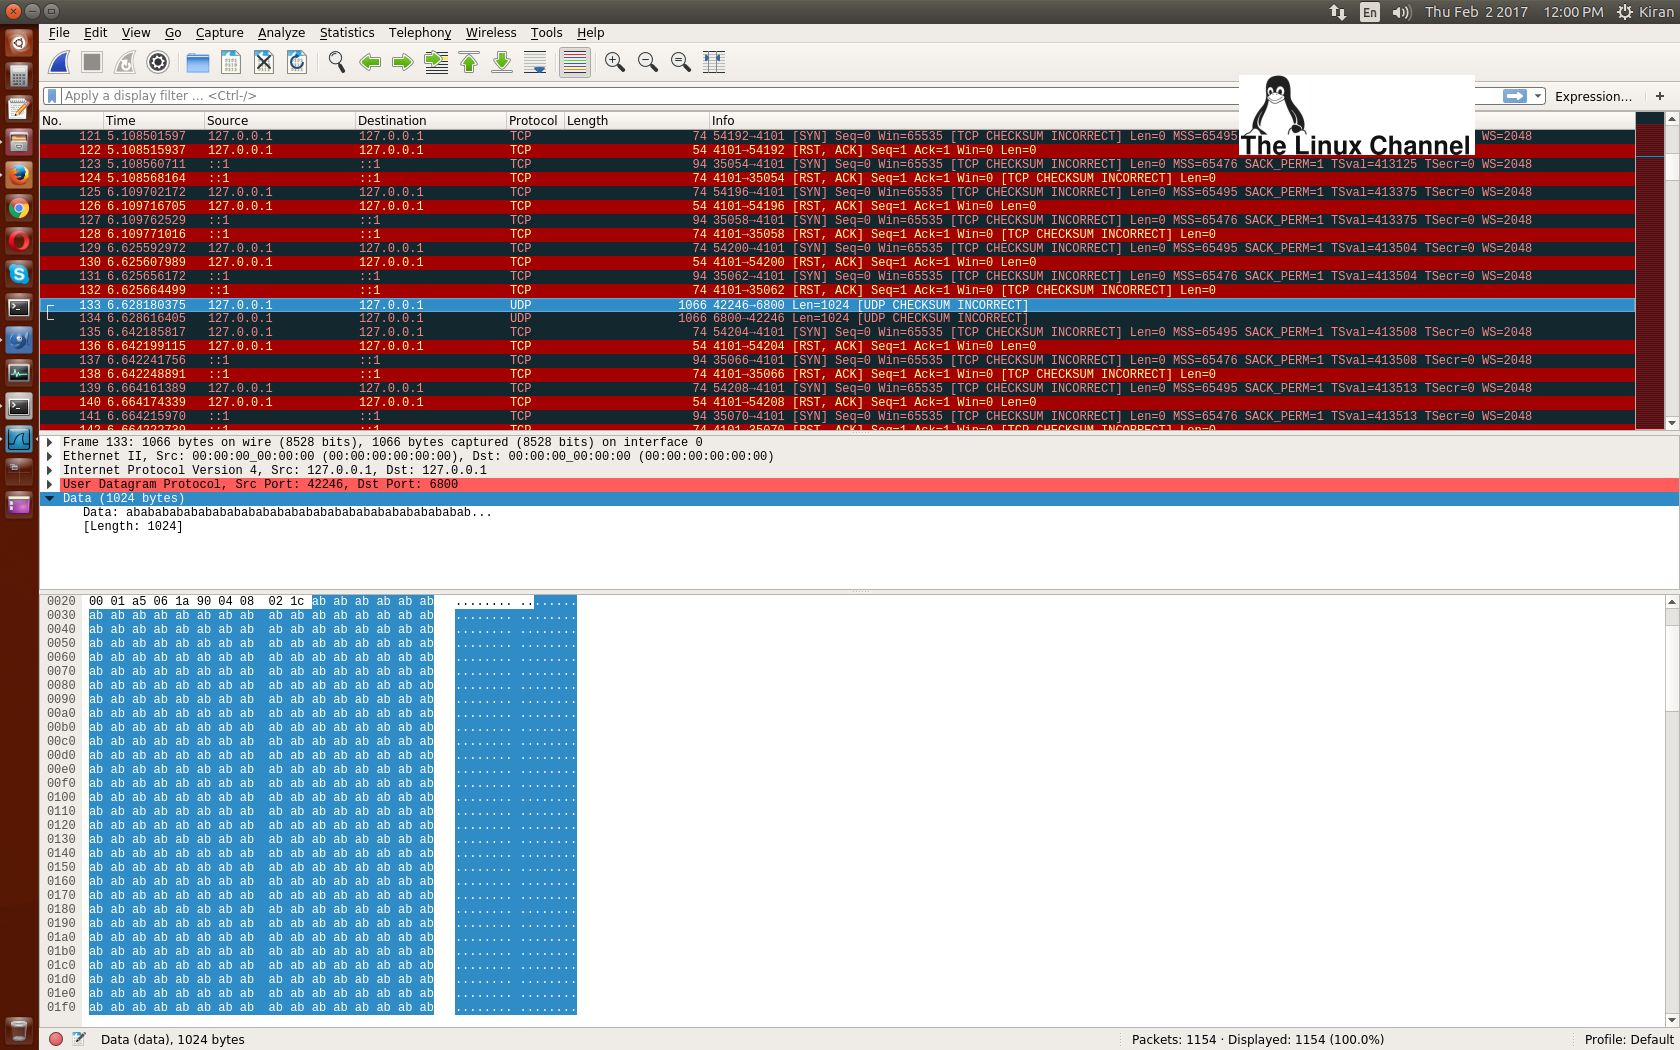 wireshark capture of udp packet client to server